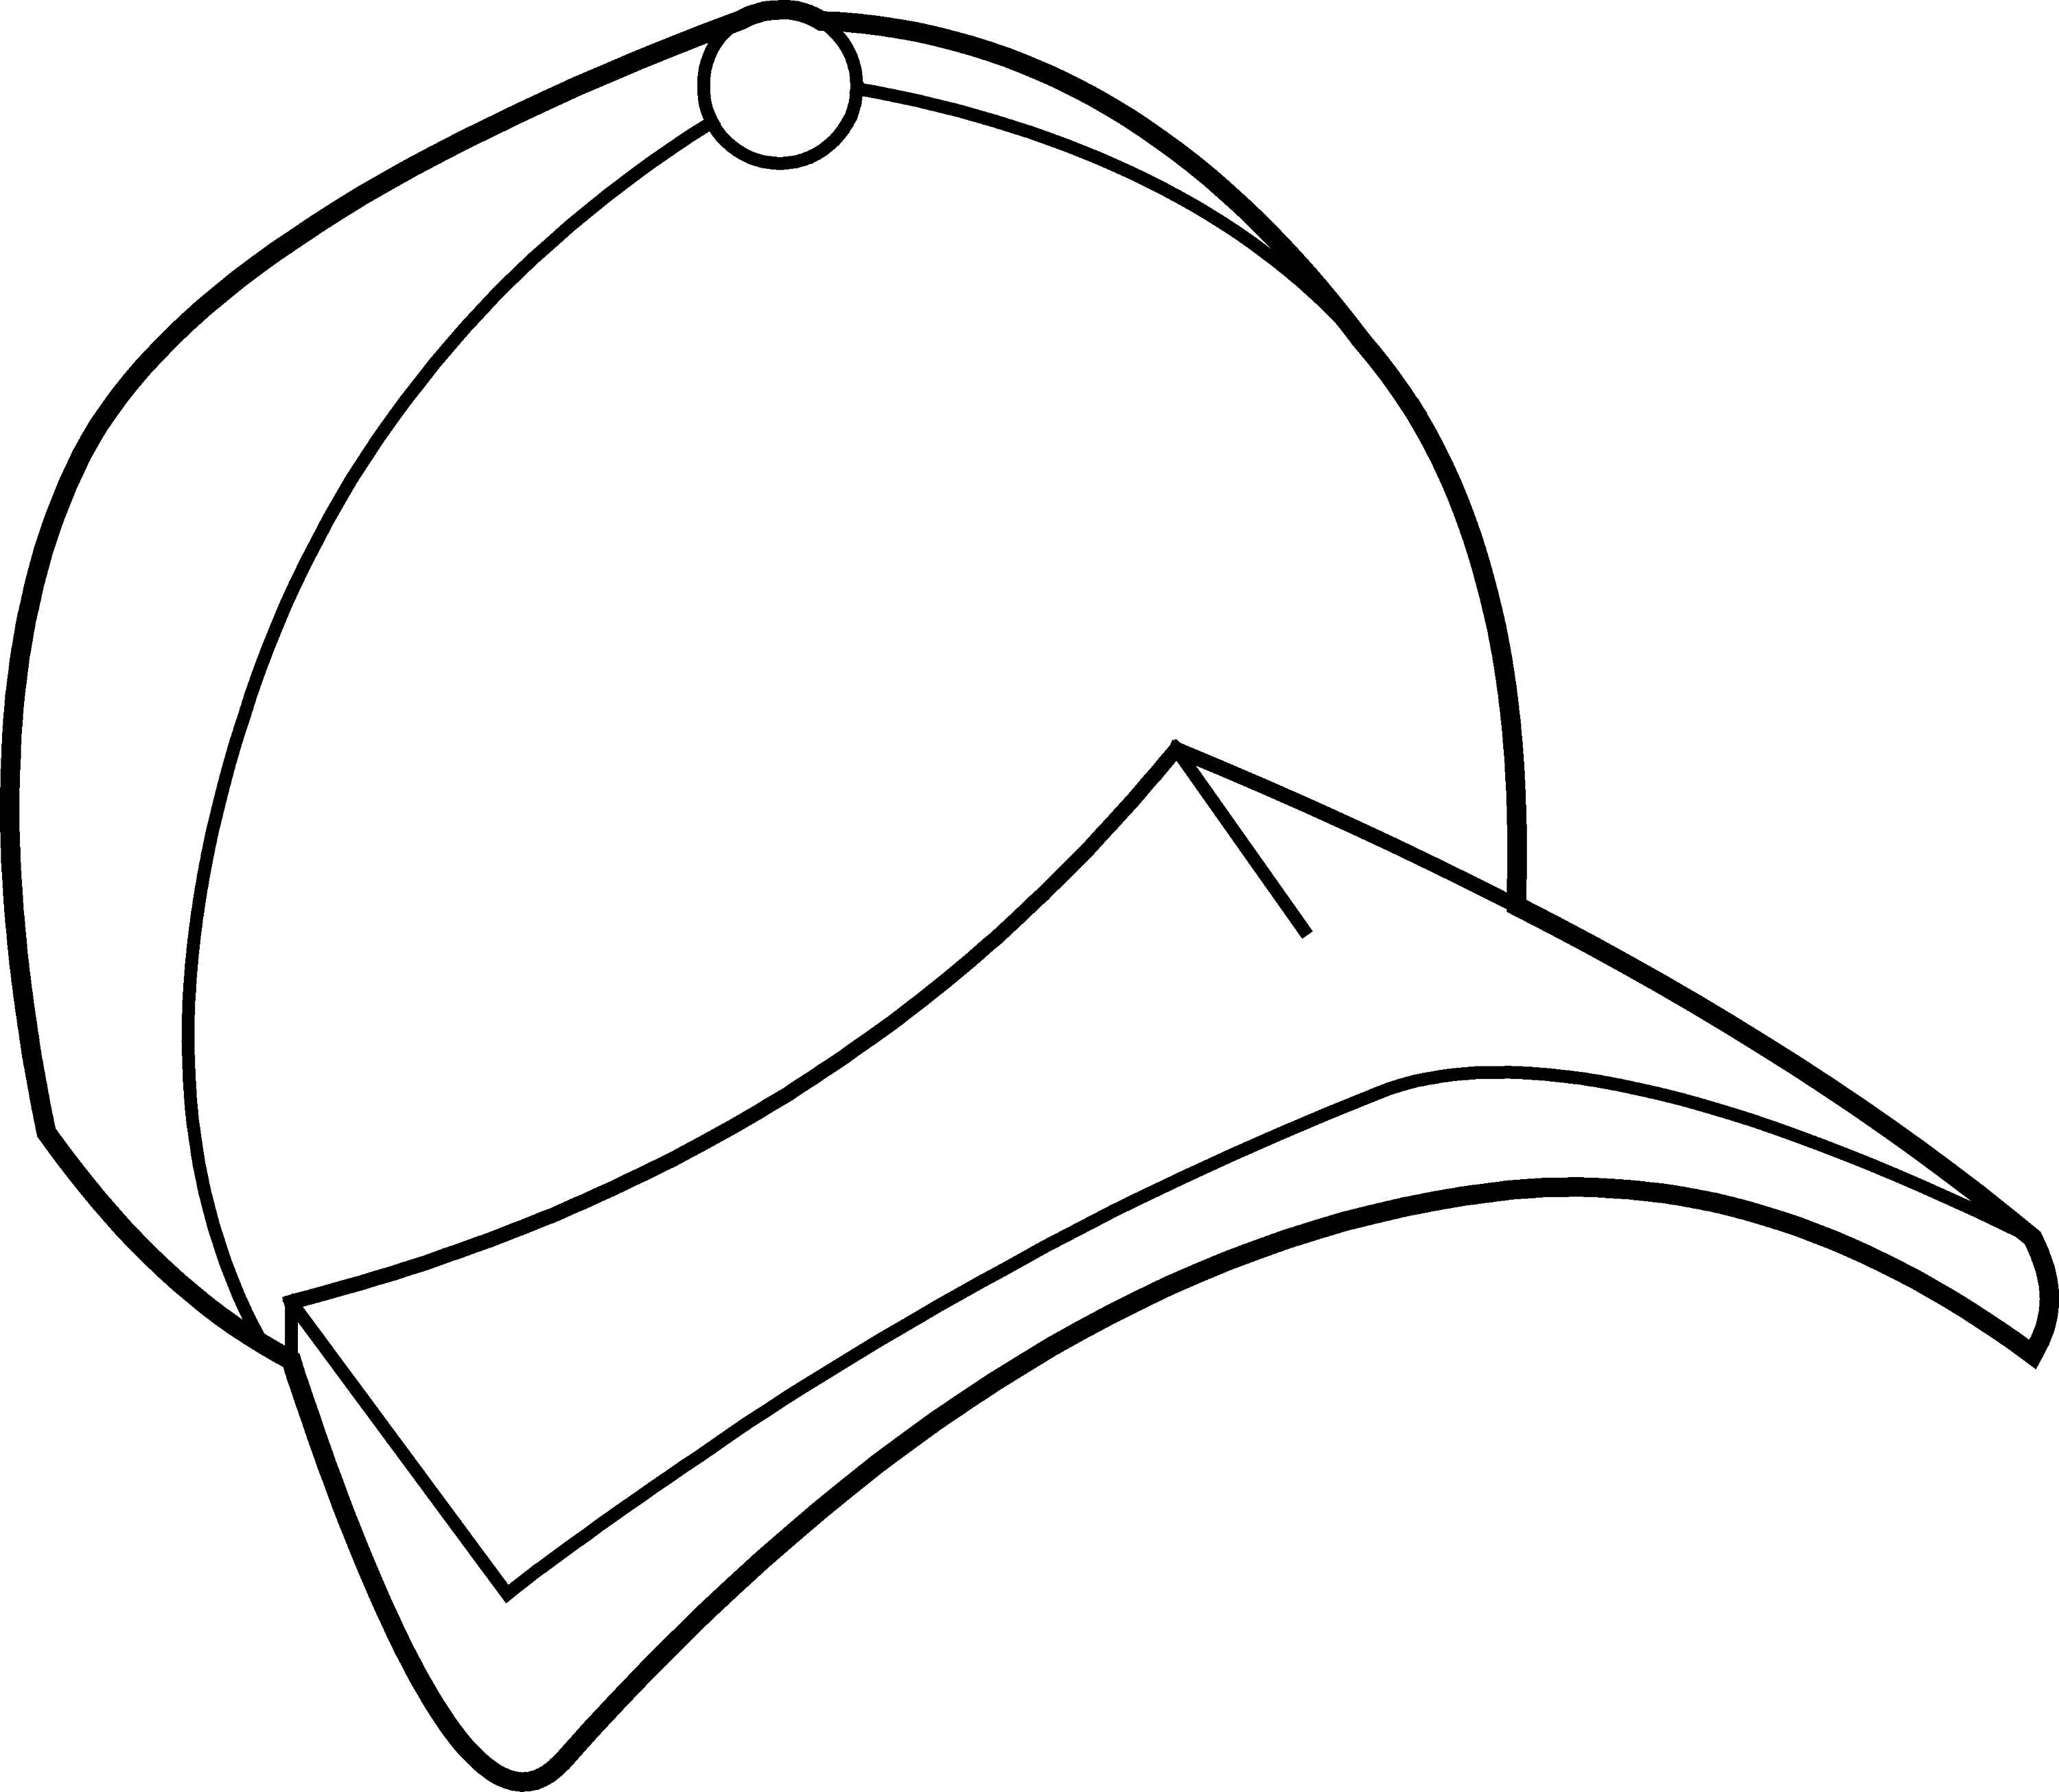 cap coloring page baseball cap coloring page free clip art cap coloring page